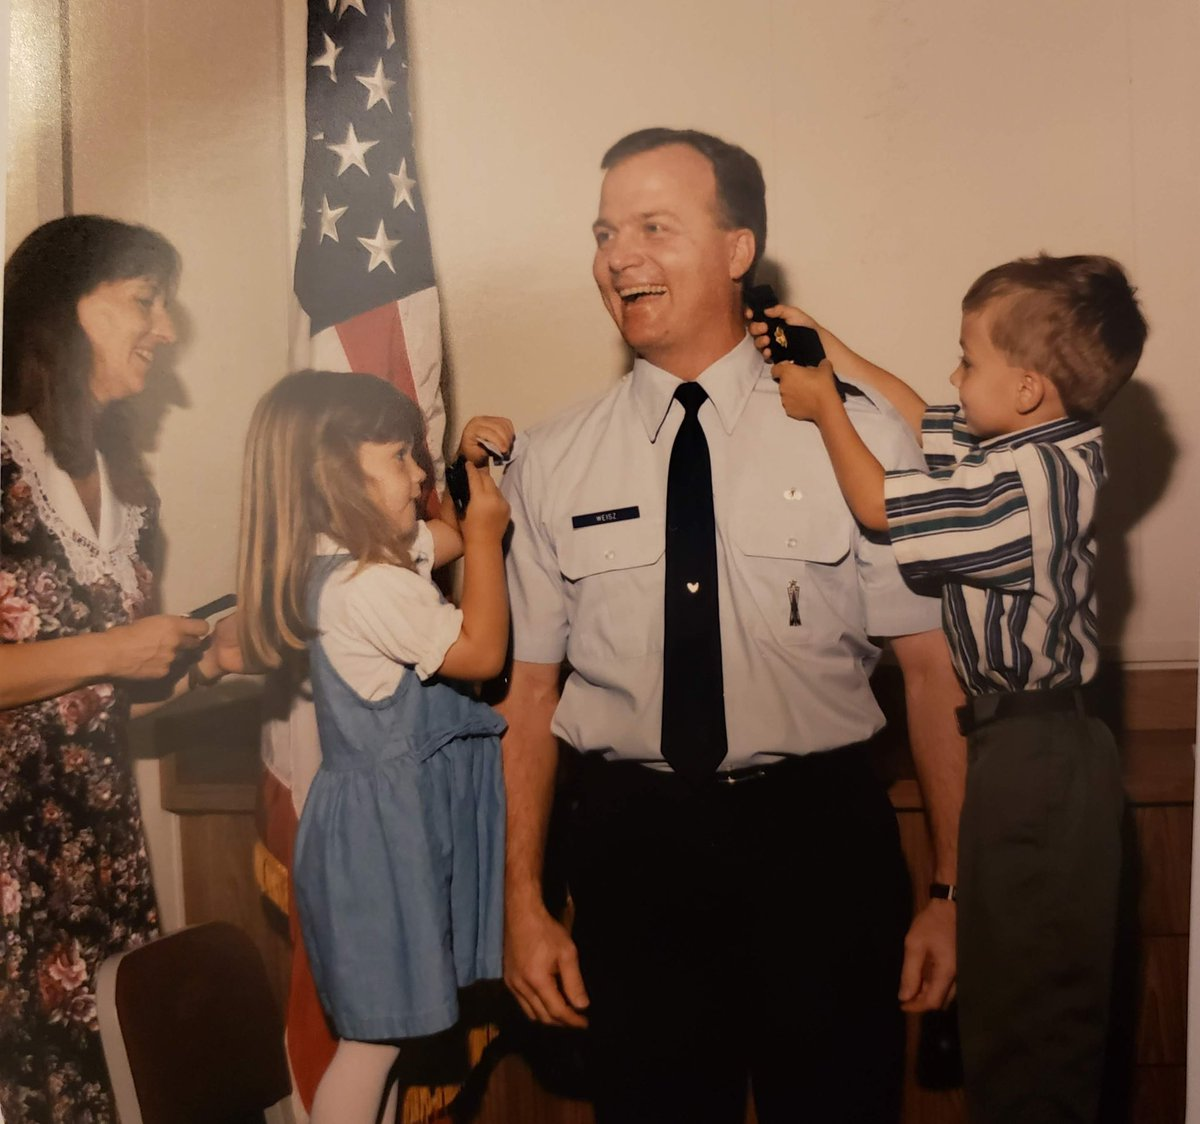 April is Month of the Military Child and military kids are resilient! We're grateful for our military families and their service ❤️ P.S. Here's an ancient artifact of little Ms. Weisz and her dad, who served 20 years in the Air Force. What year do you think this was? <a target='_blank' href='https://t.co/BDM3uC5g8z'>https://t.co/BDM3uC5g8z</a>